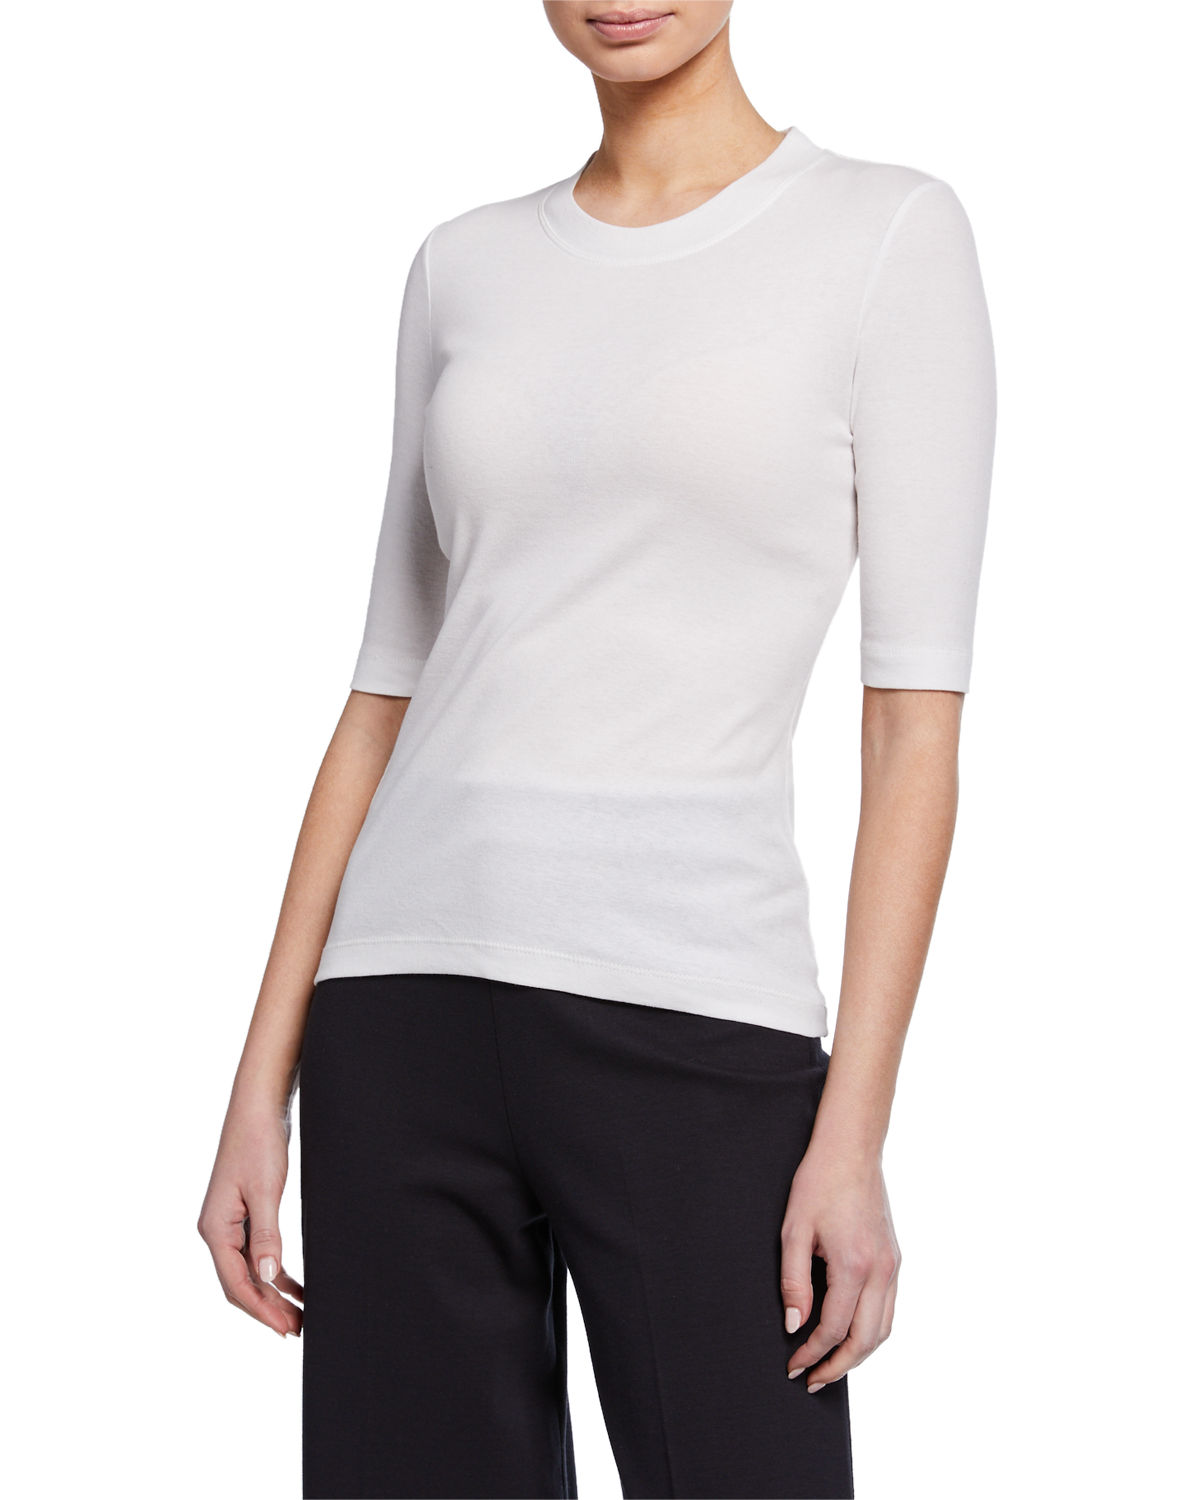 Rosetta Getty T-shirts 1/2-Sleeve Fitted T-Shirt, WHITE